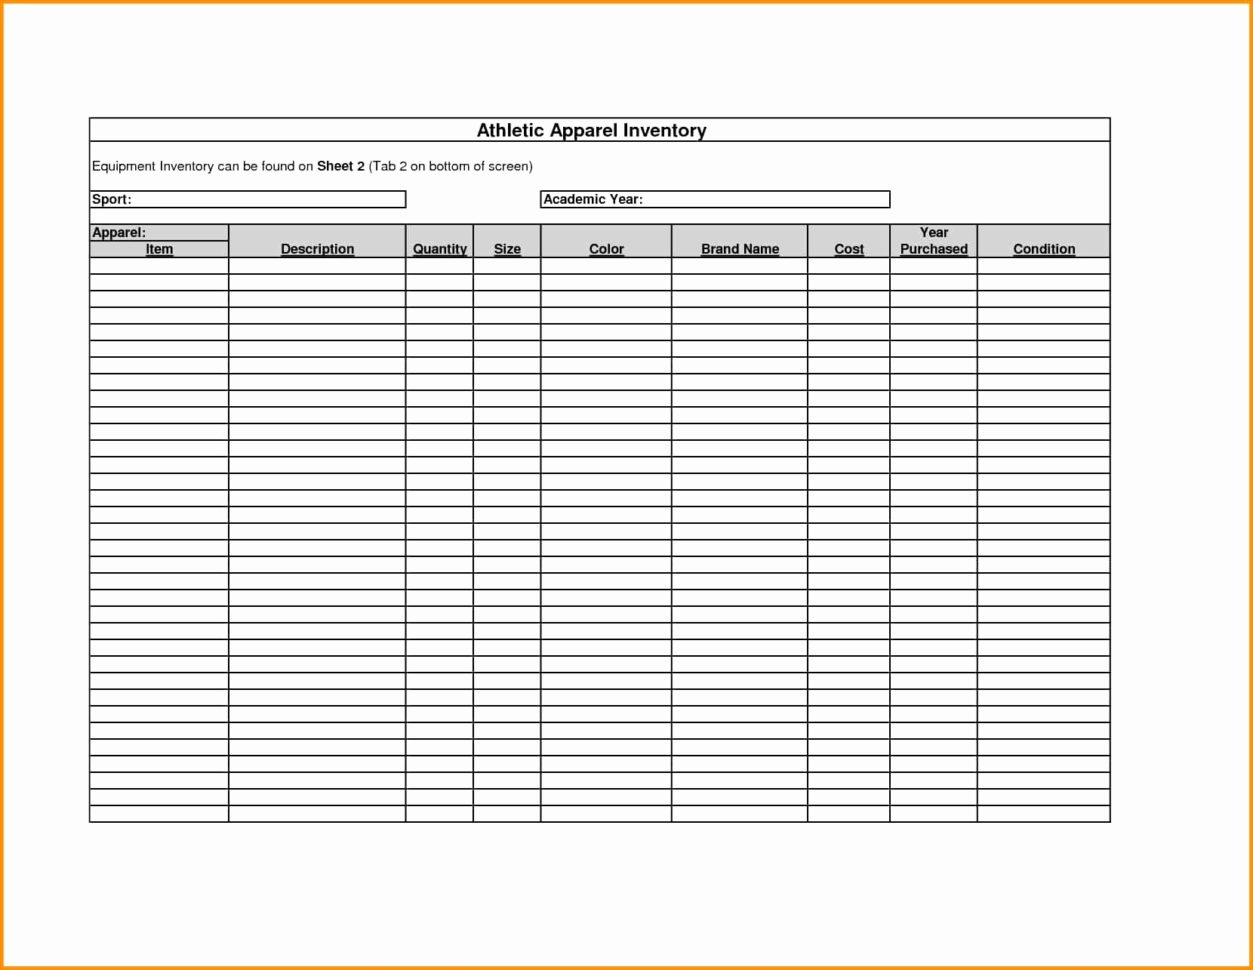 Inventory Management In Excel Free Download Fresh Inventory And Inventory Management Excel Sheet Download